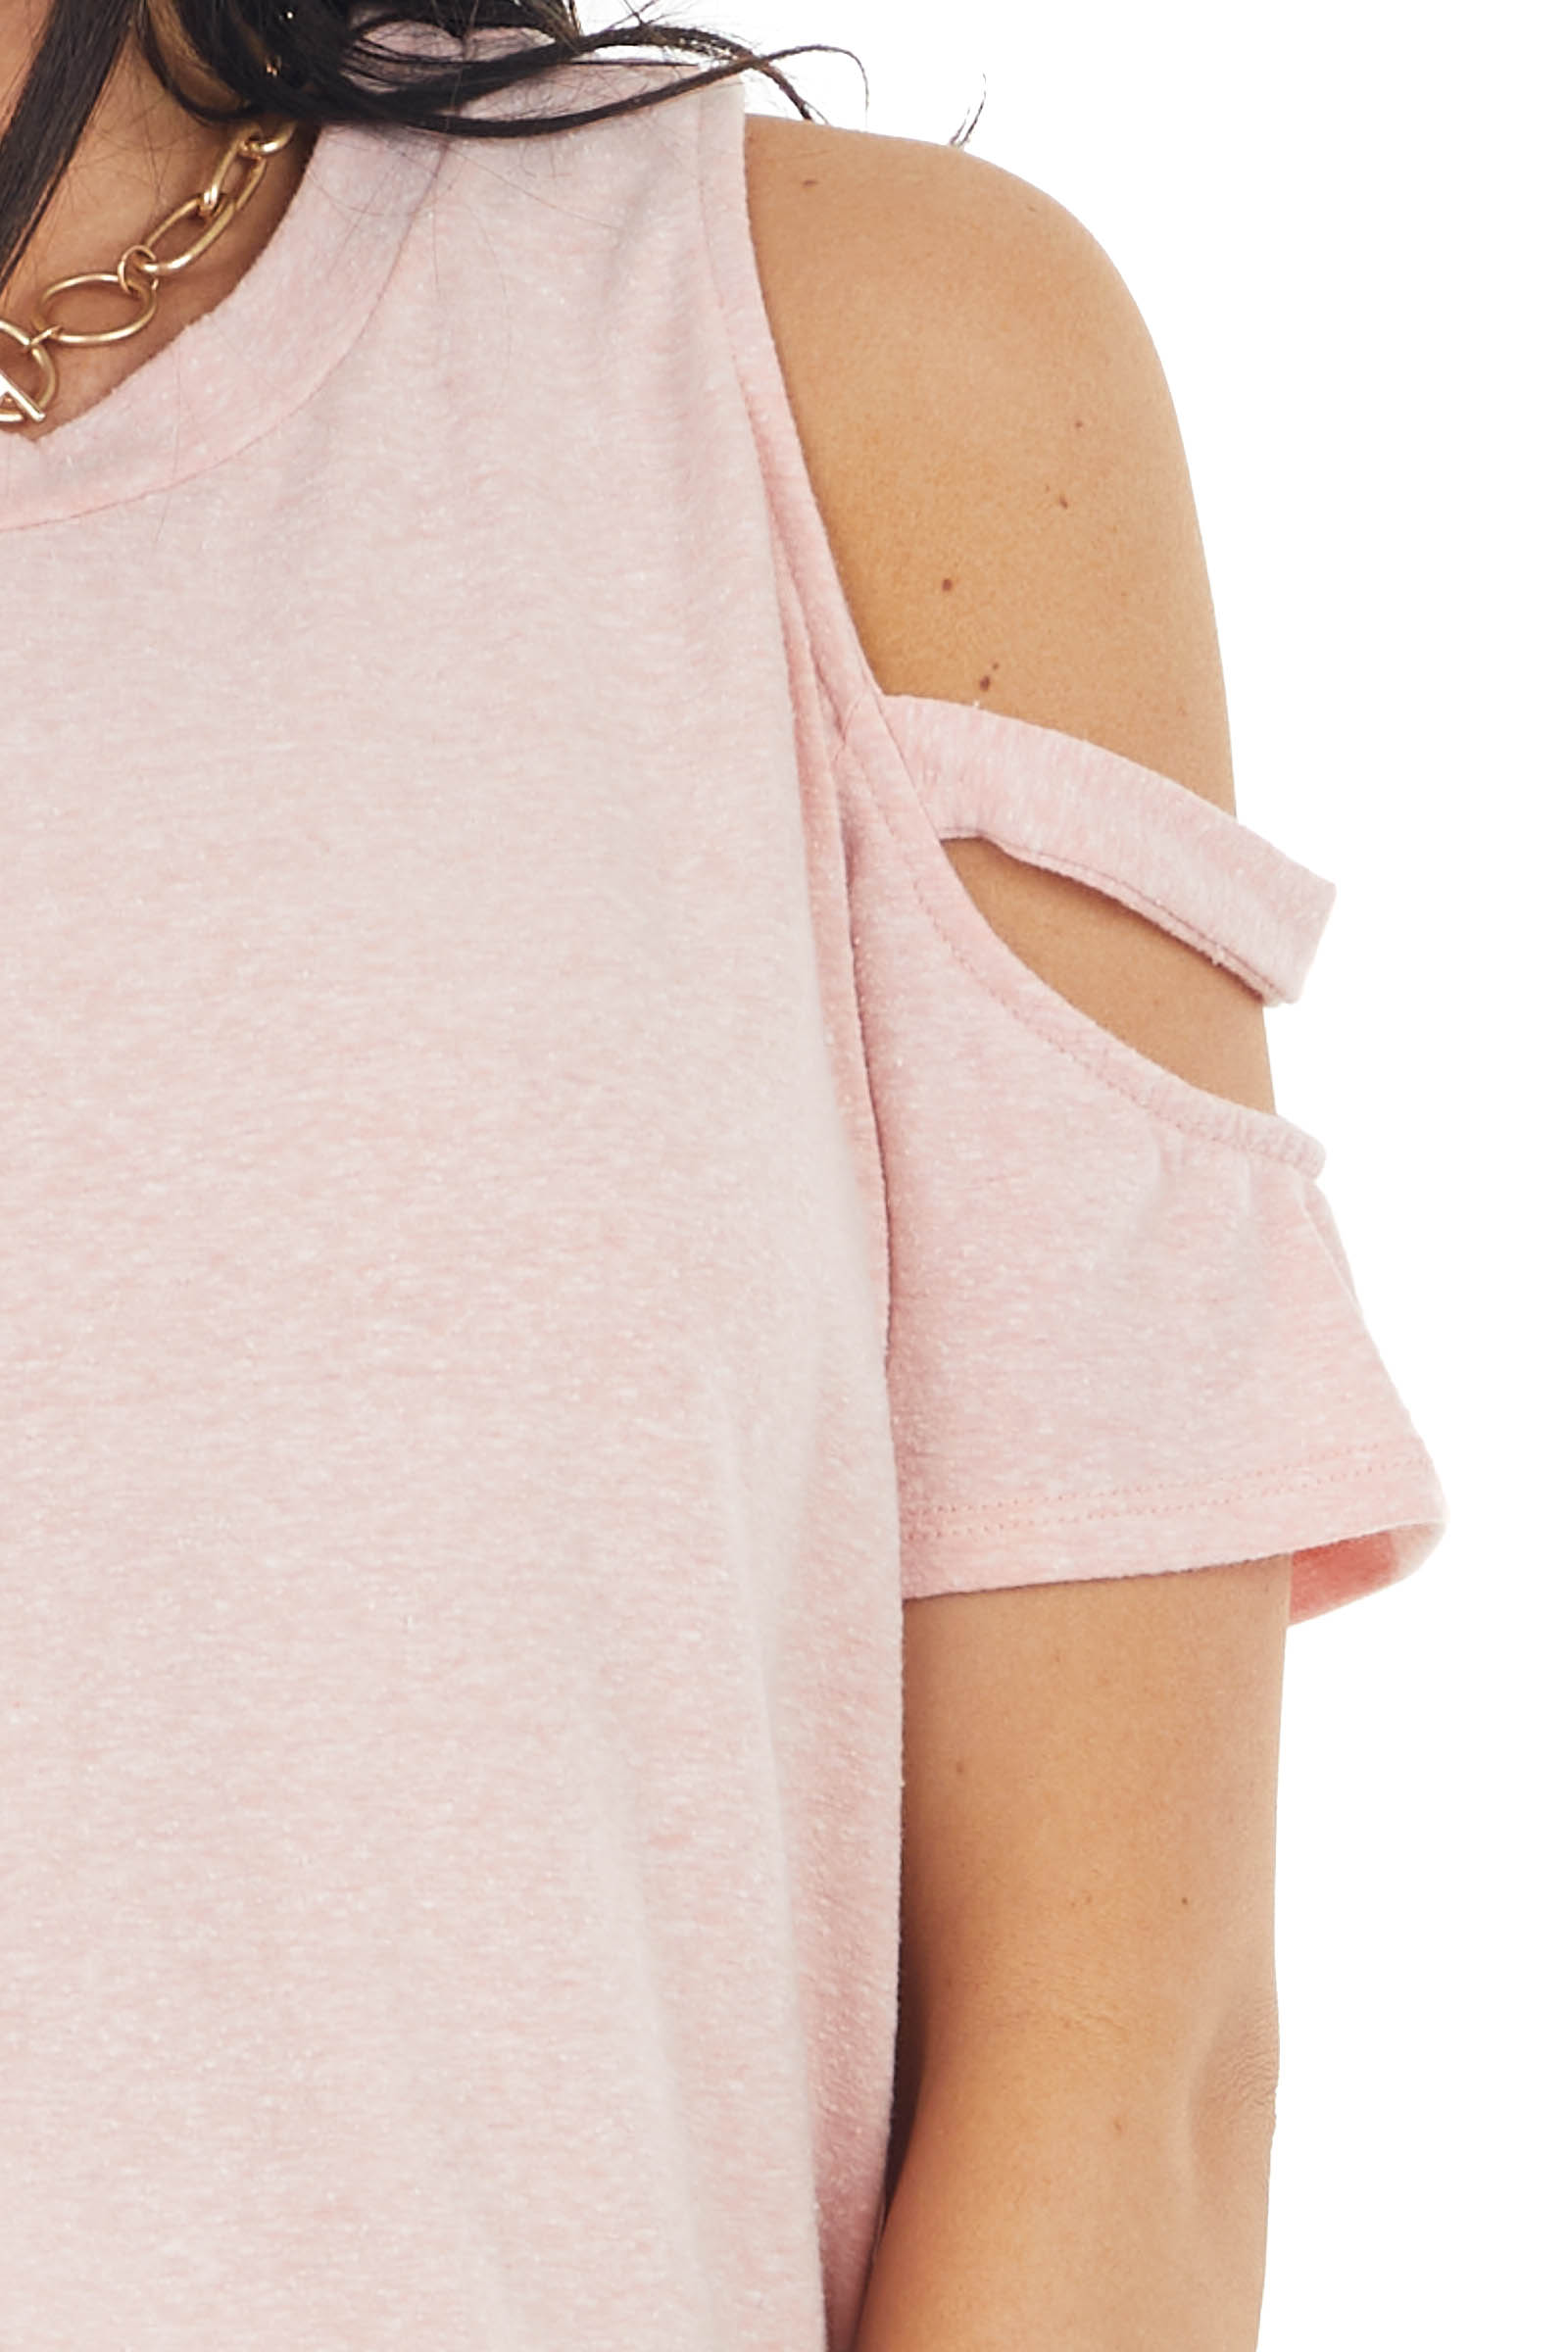 Peach Short Sleeve Stretchy Knit Top with Cold Shoulder